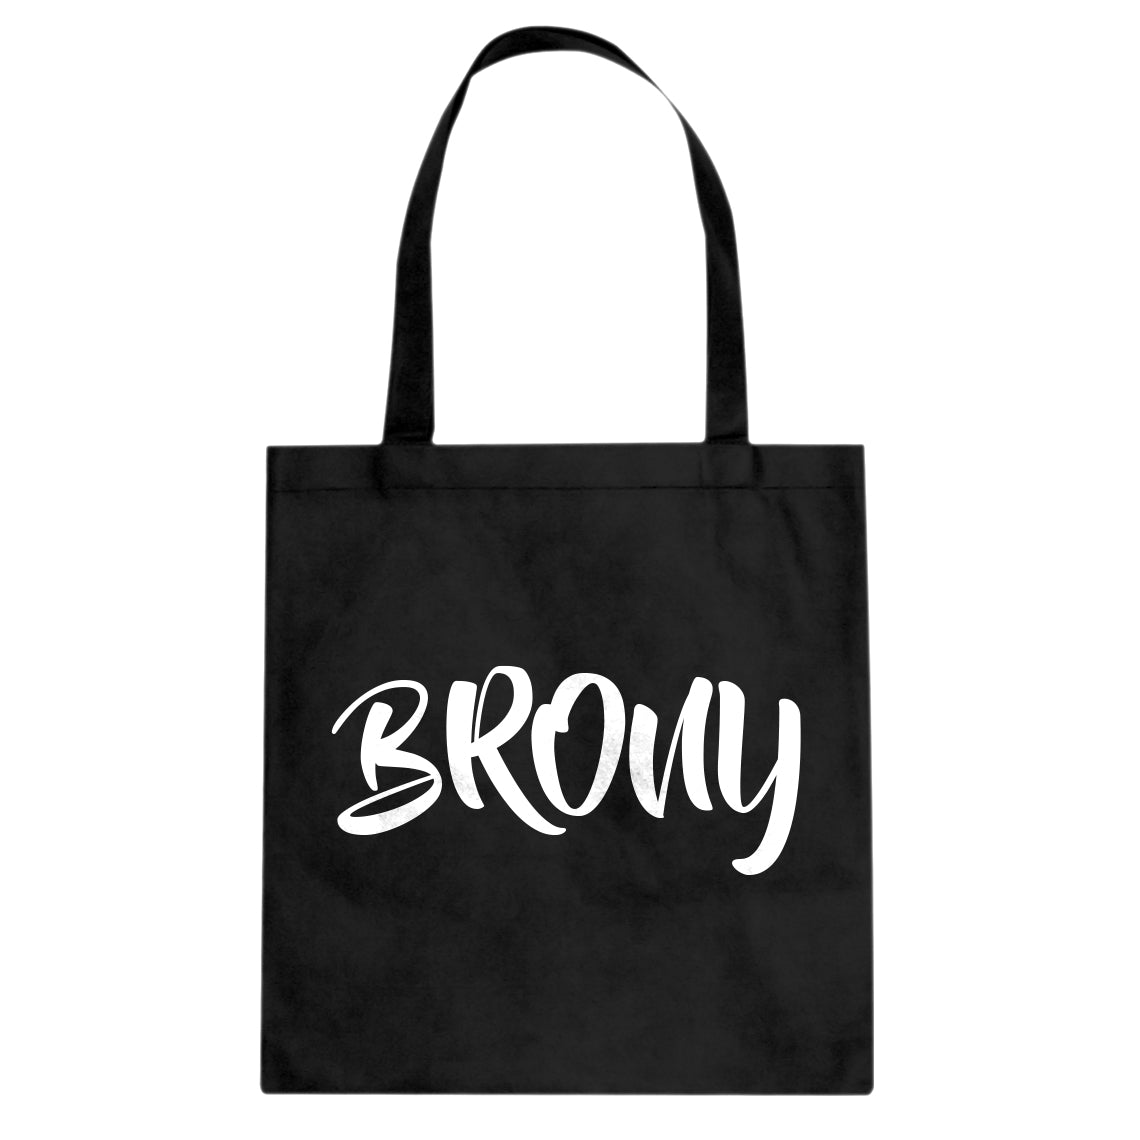 Tote Brony Canvas Tote Bag